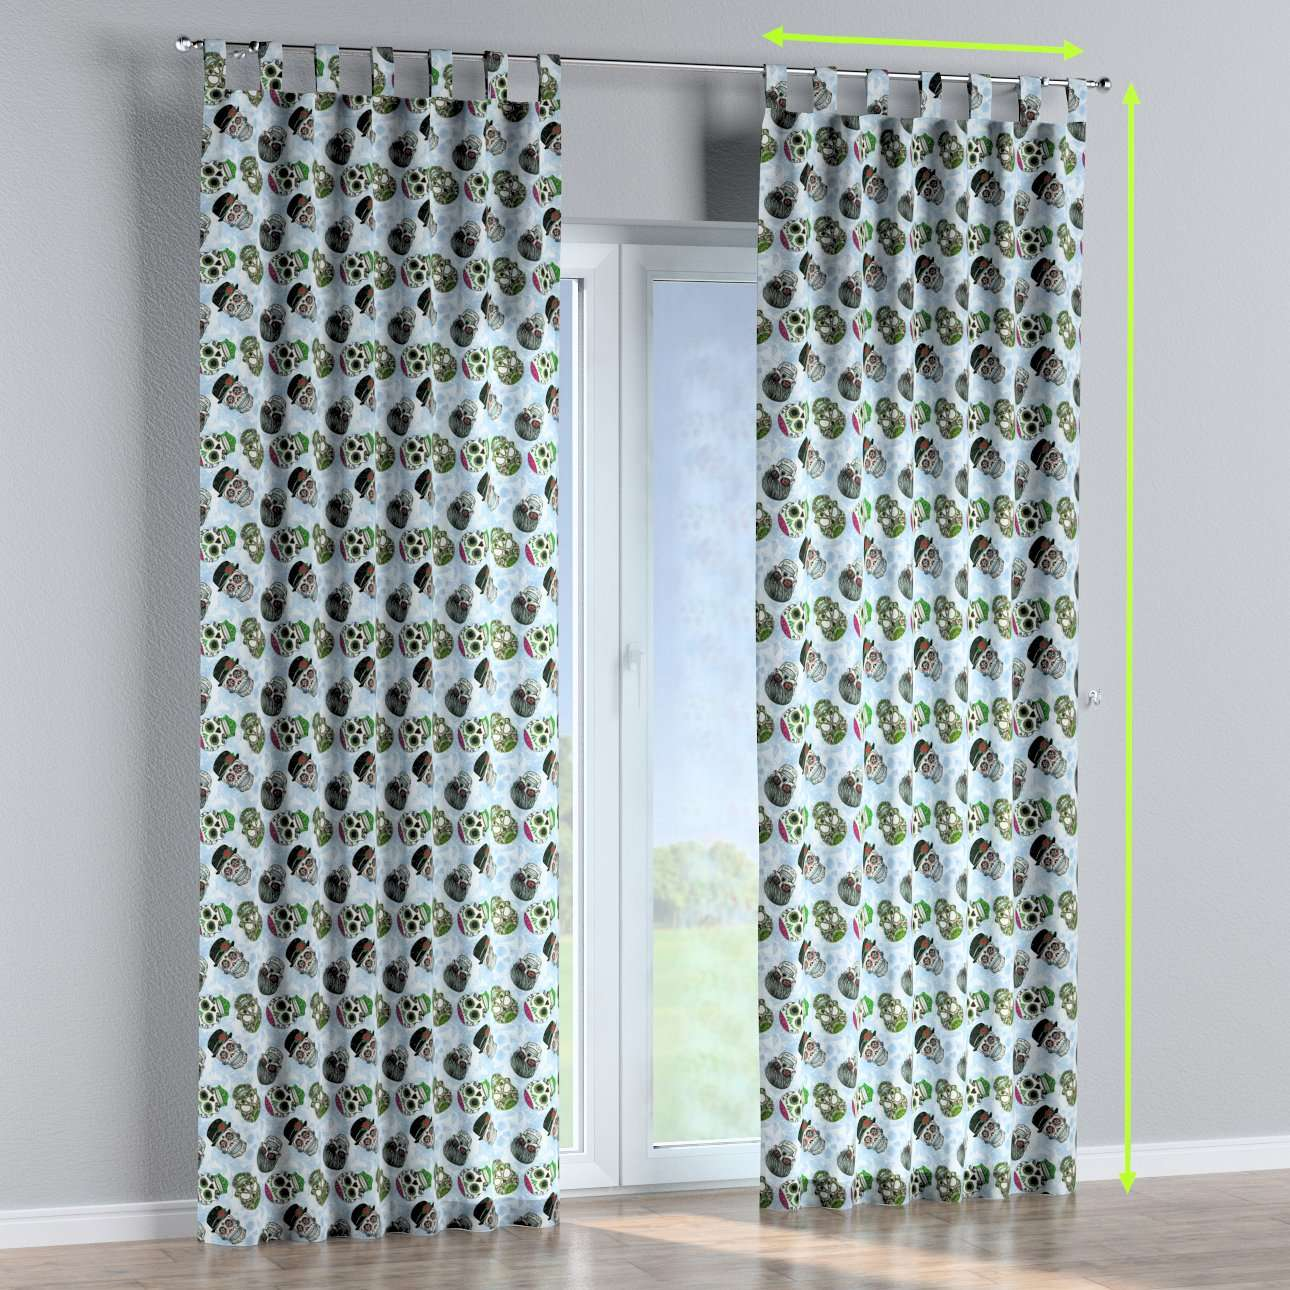 Tab top curtains in collection Freestyle, fabric: 141-01